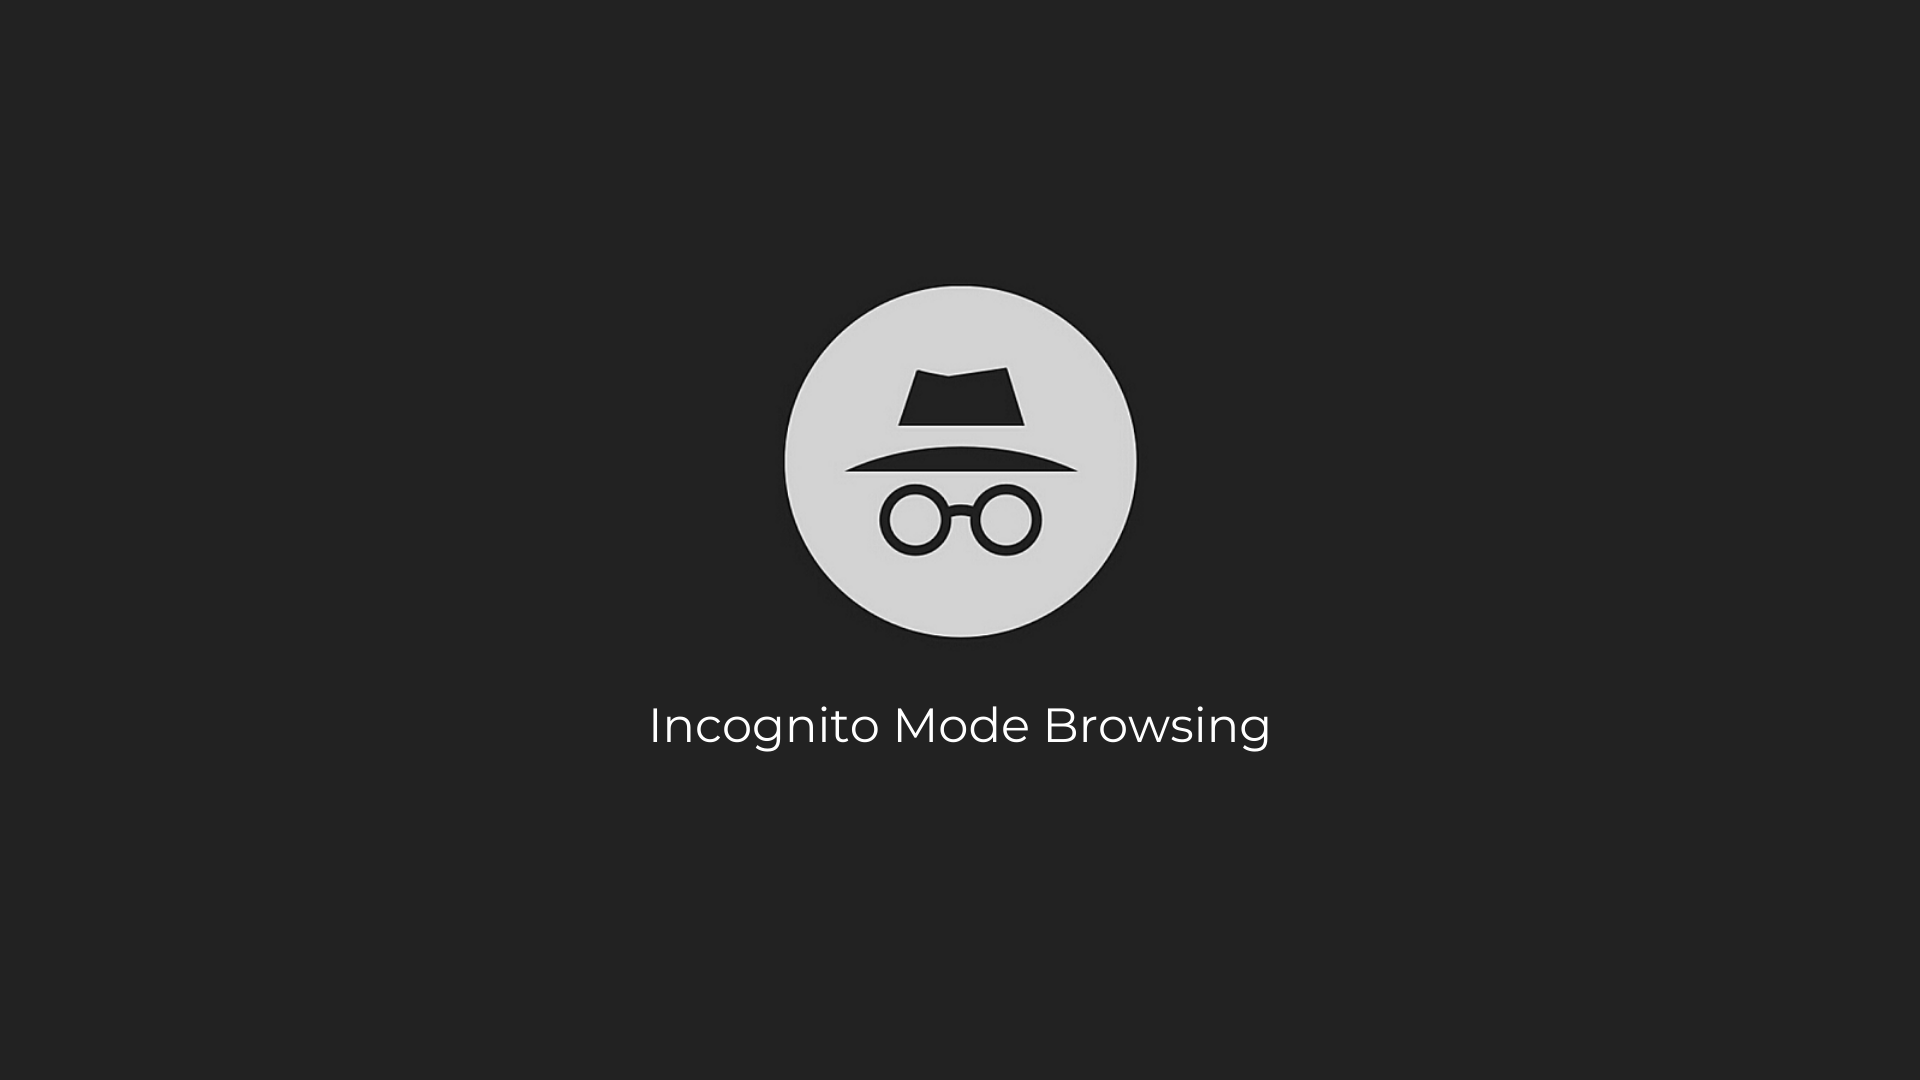 What is Incognito Mode Browsing?